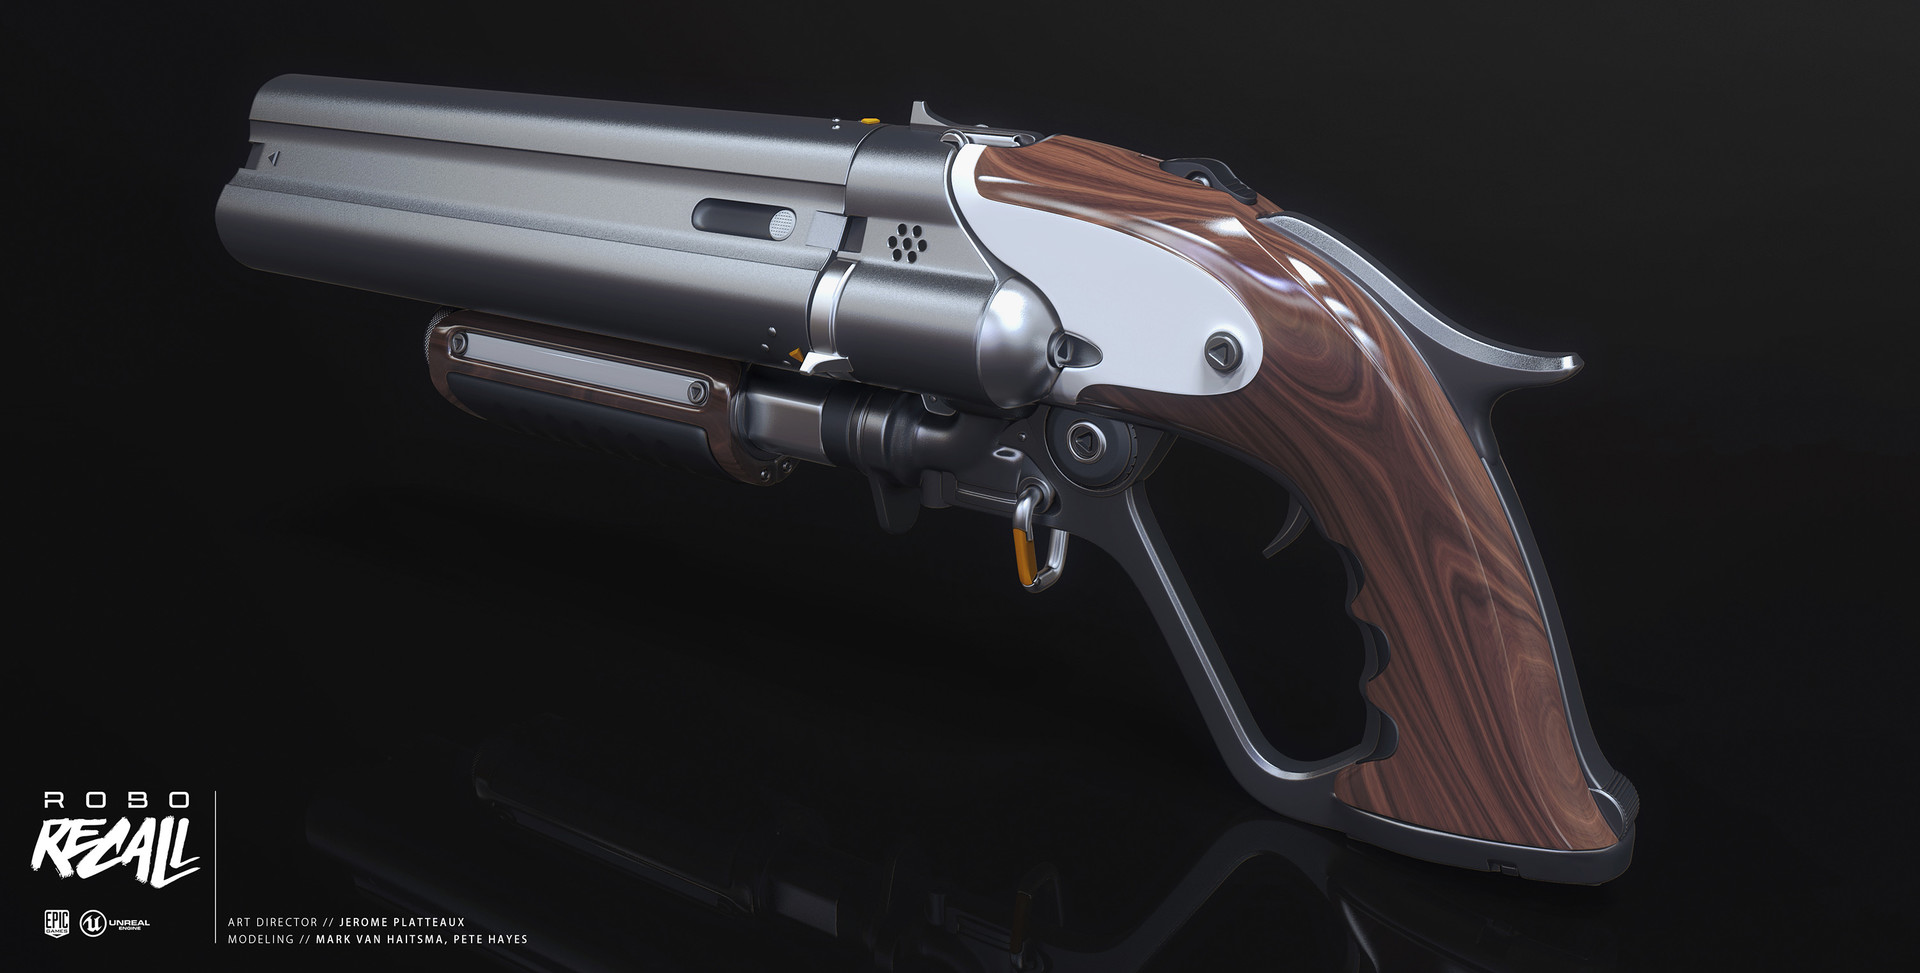 Mark van haitsma triple barrel shotgun back perspective